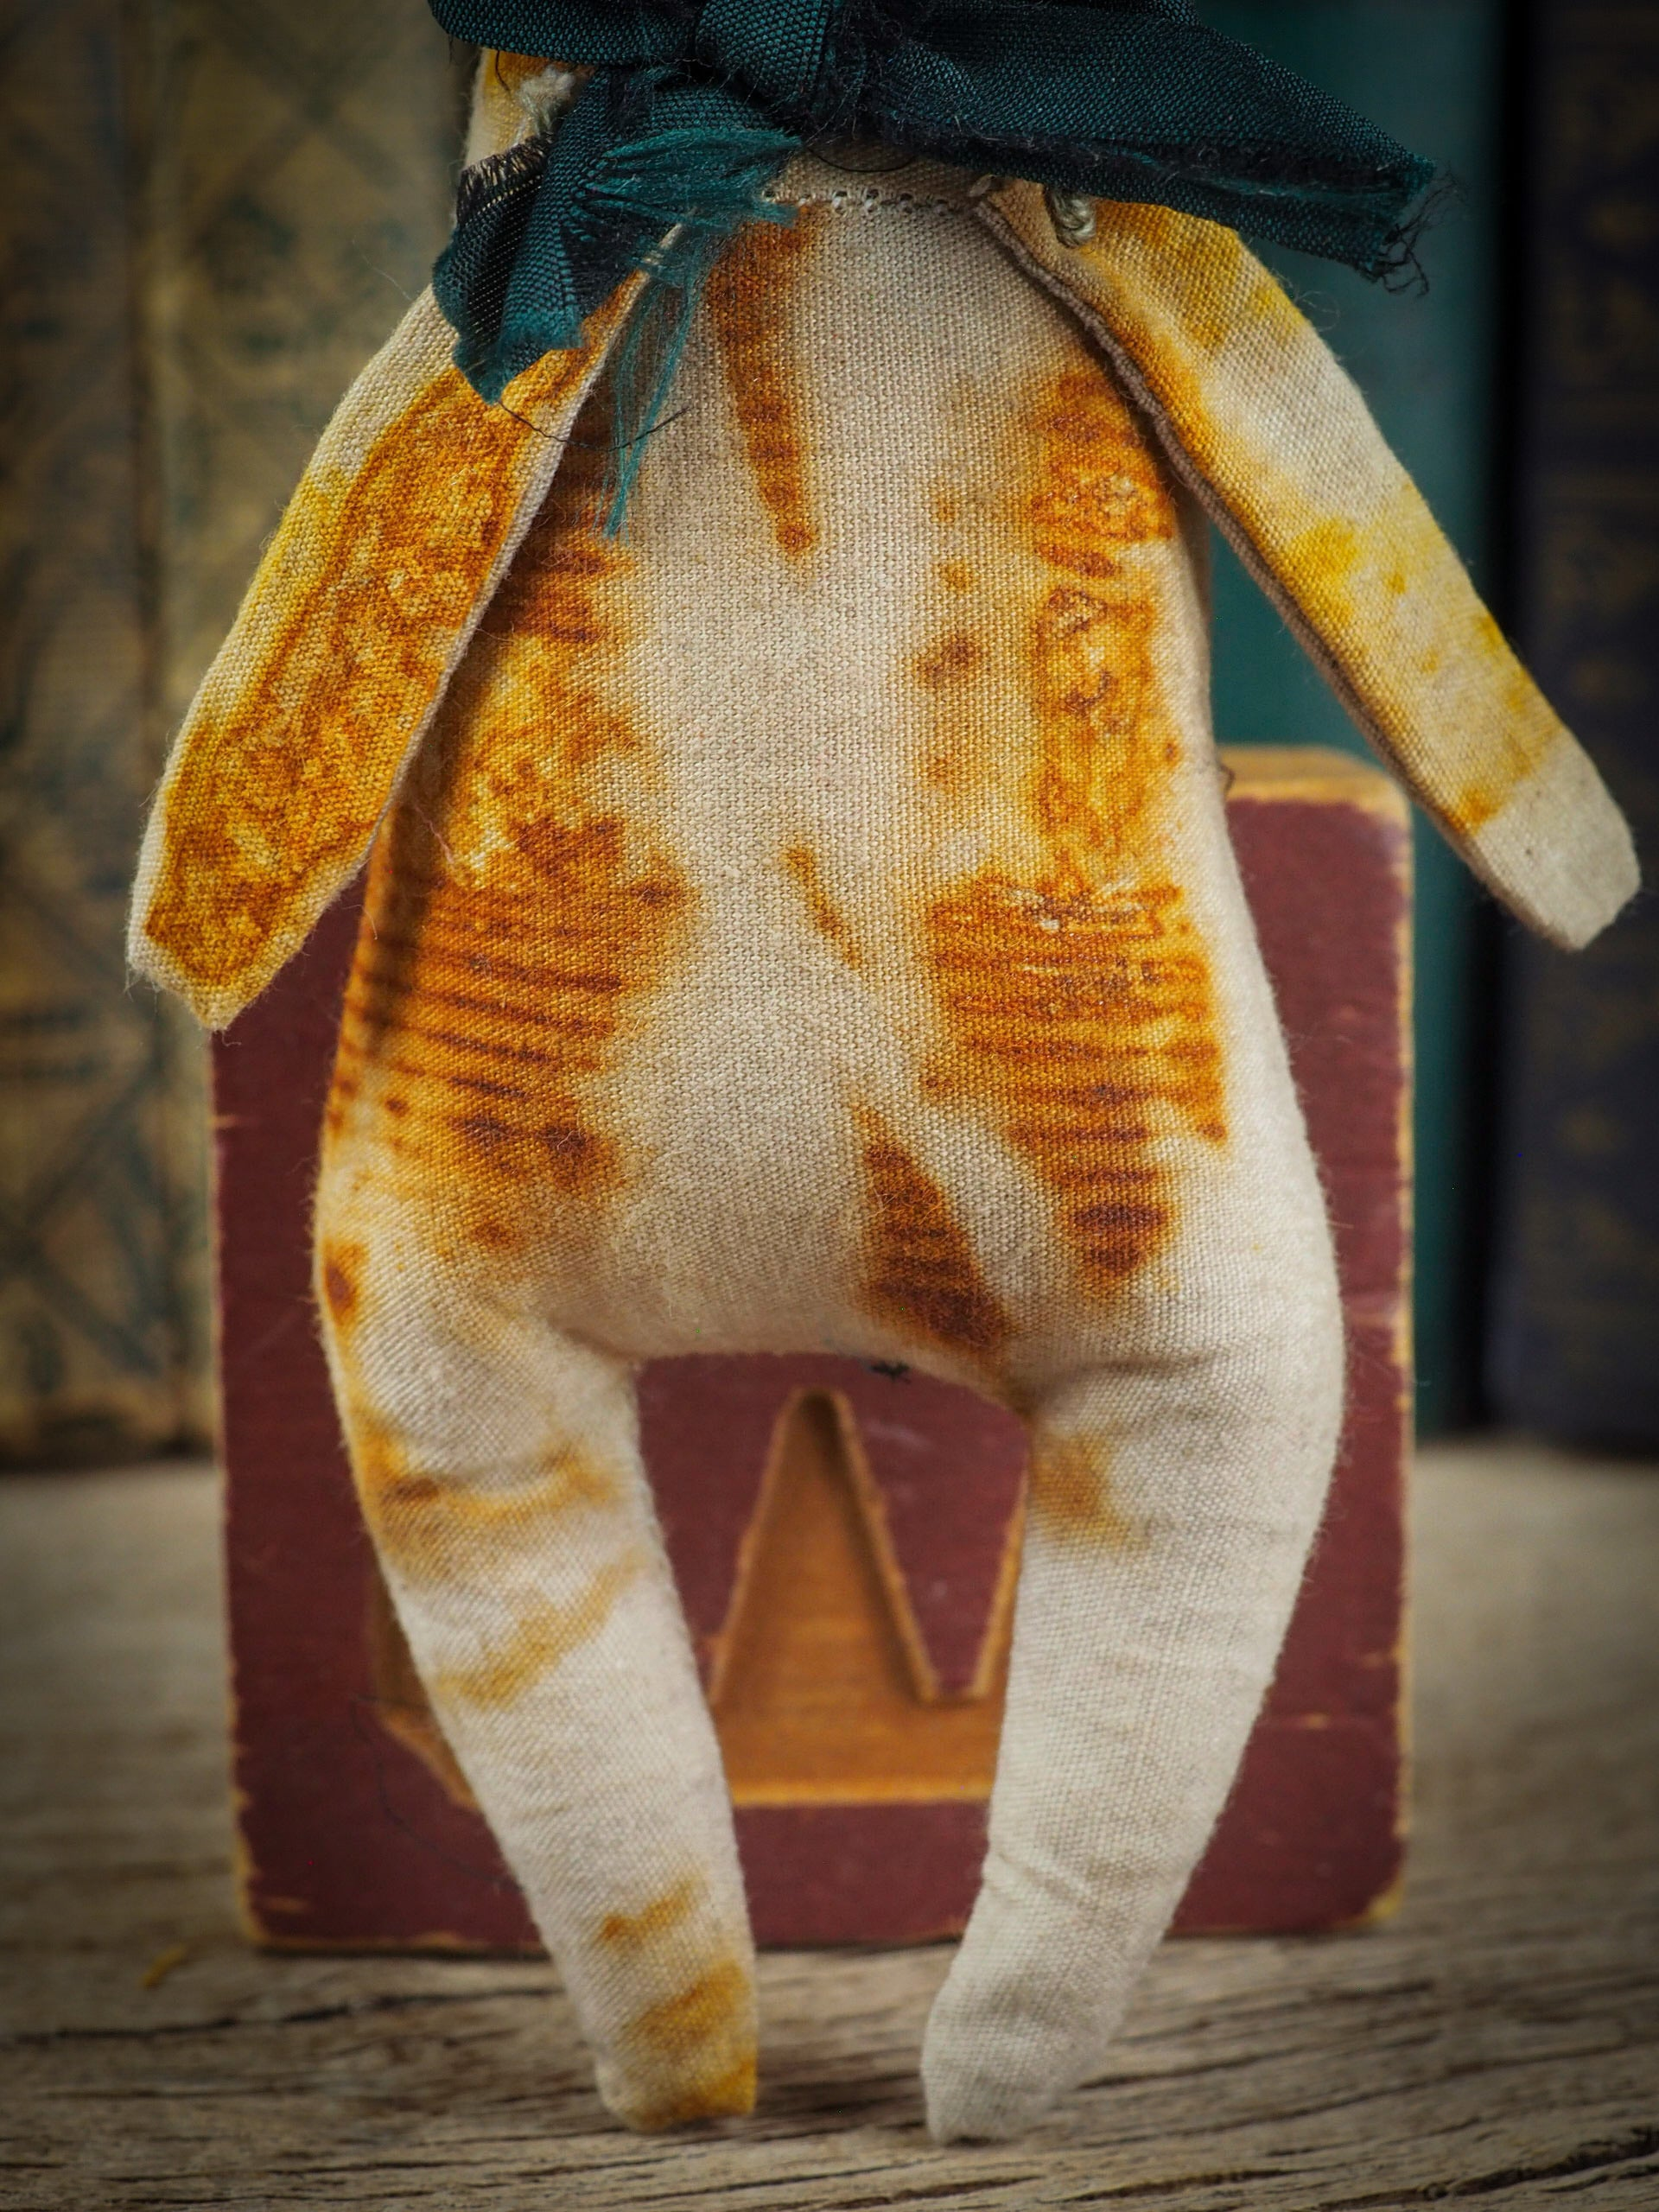 Soft sculpture art doll by Idania Salcido Danita Art with a Handmade ceramics face, organic dyed fabric and silk bow